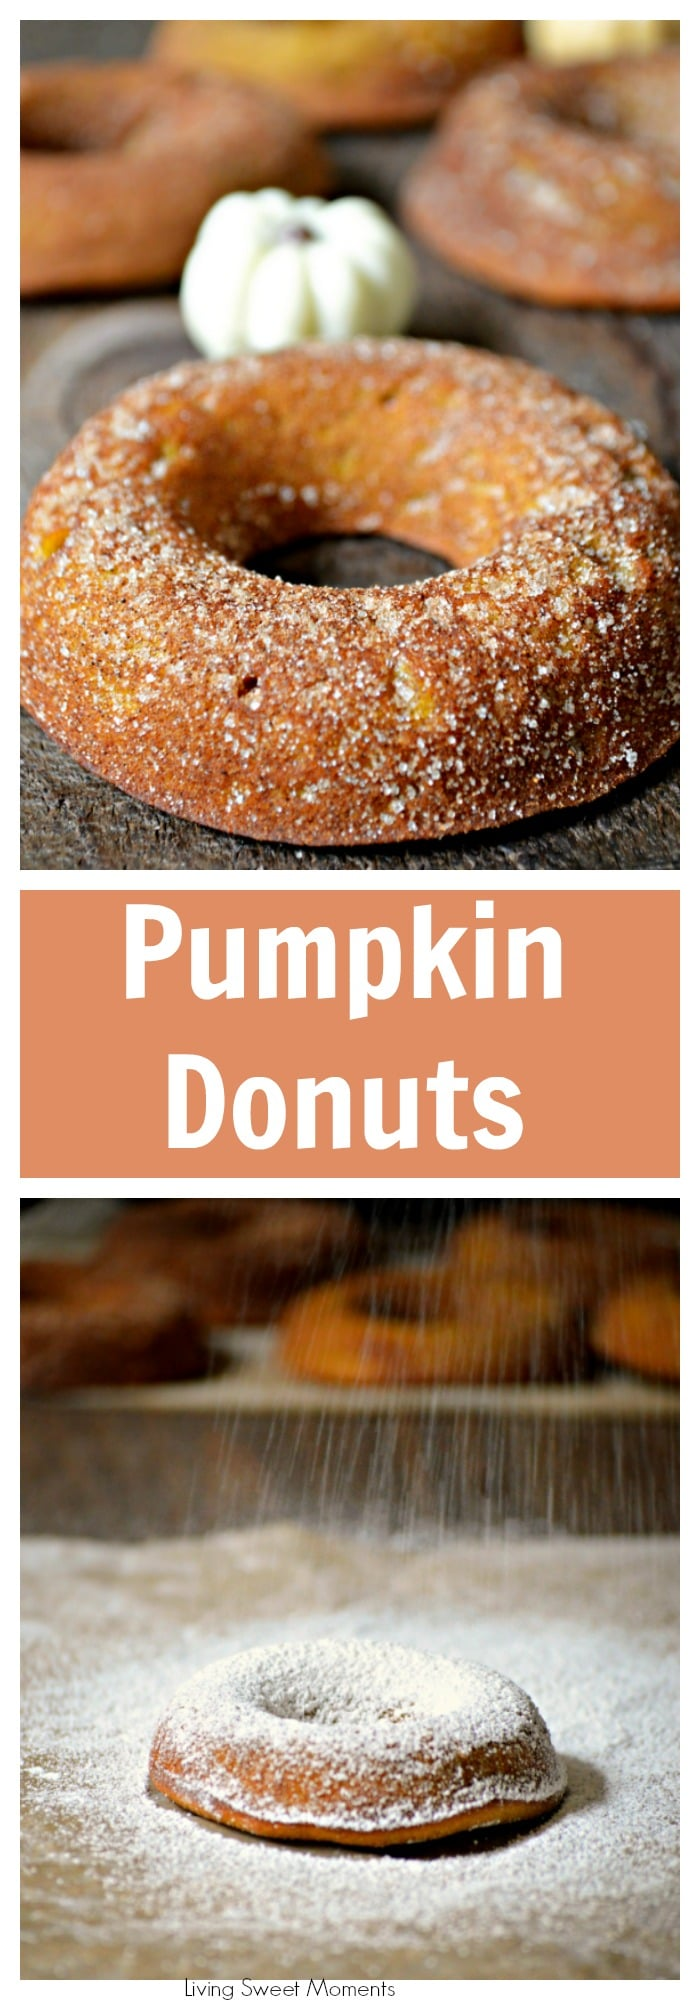 Baked Pumpkin Donuts – These are the best fall doughnuts you will ever try! They are so soft and moist and loaded with pumpkin/cinnamon flavor! Yummy!